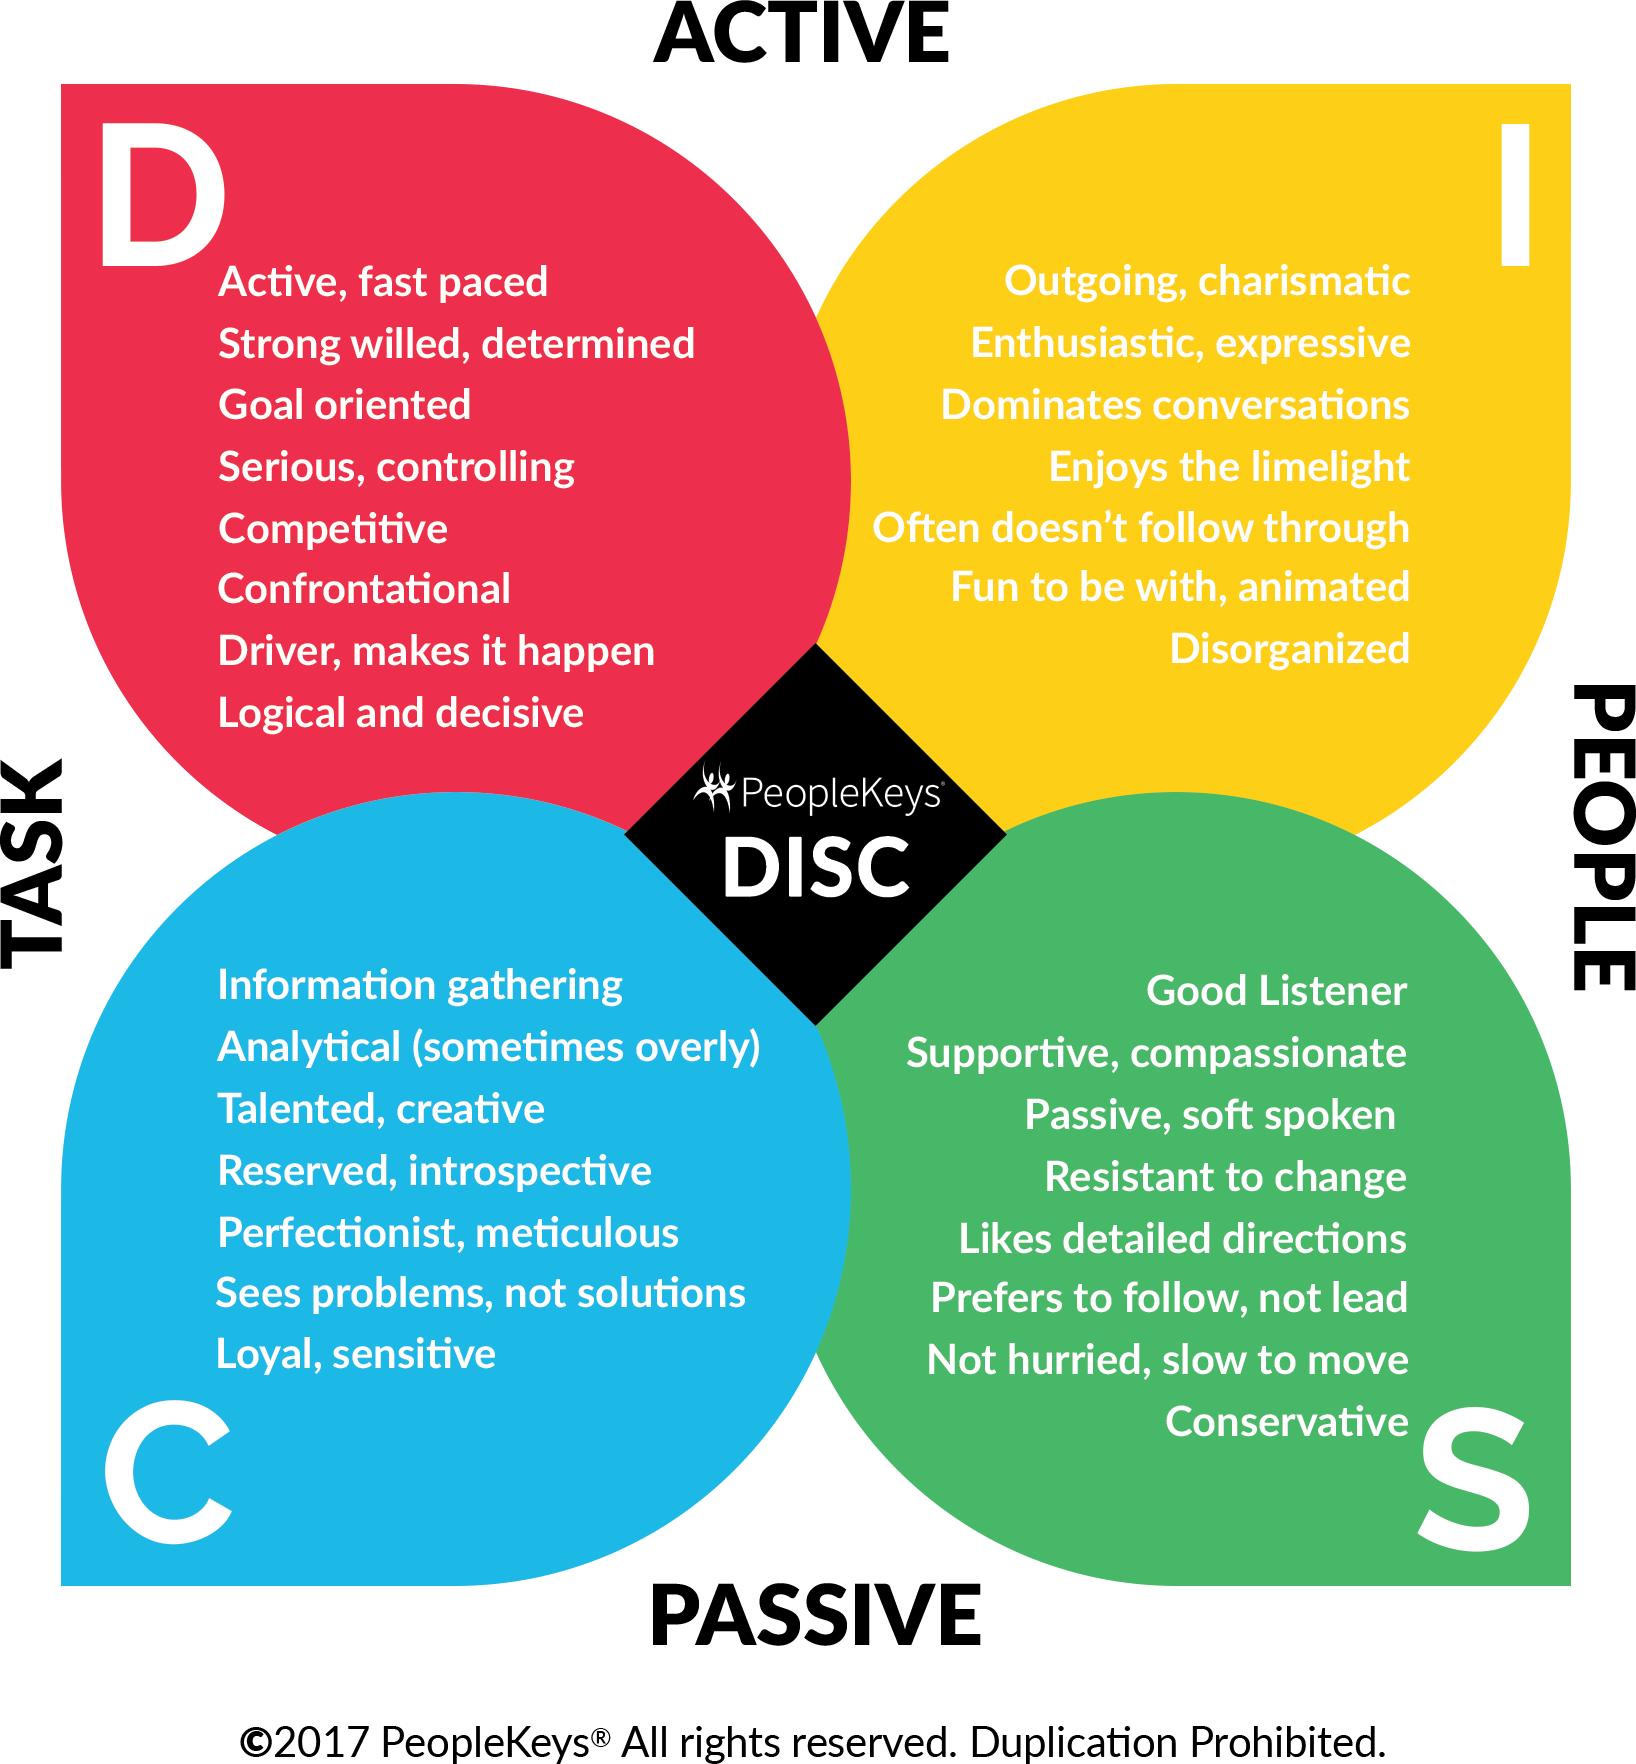 DISC Personality Traits Breakdown